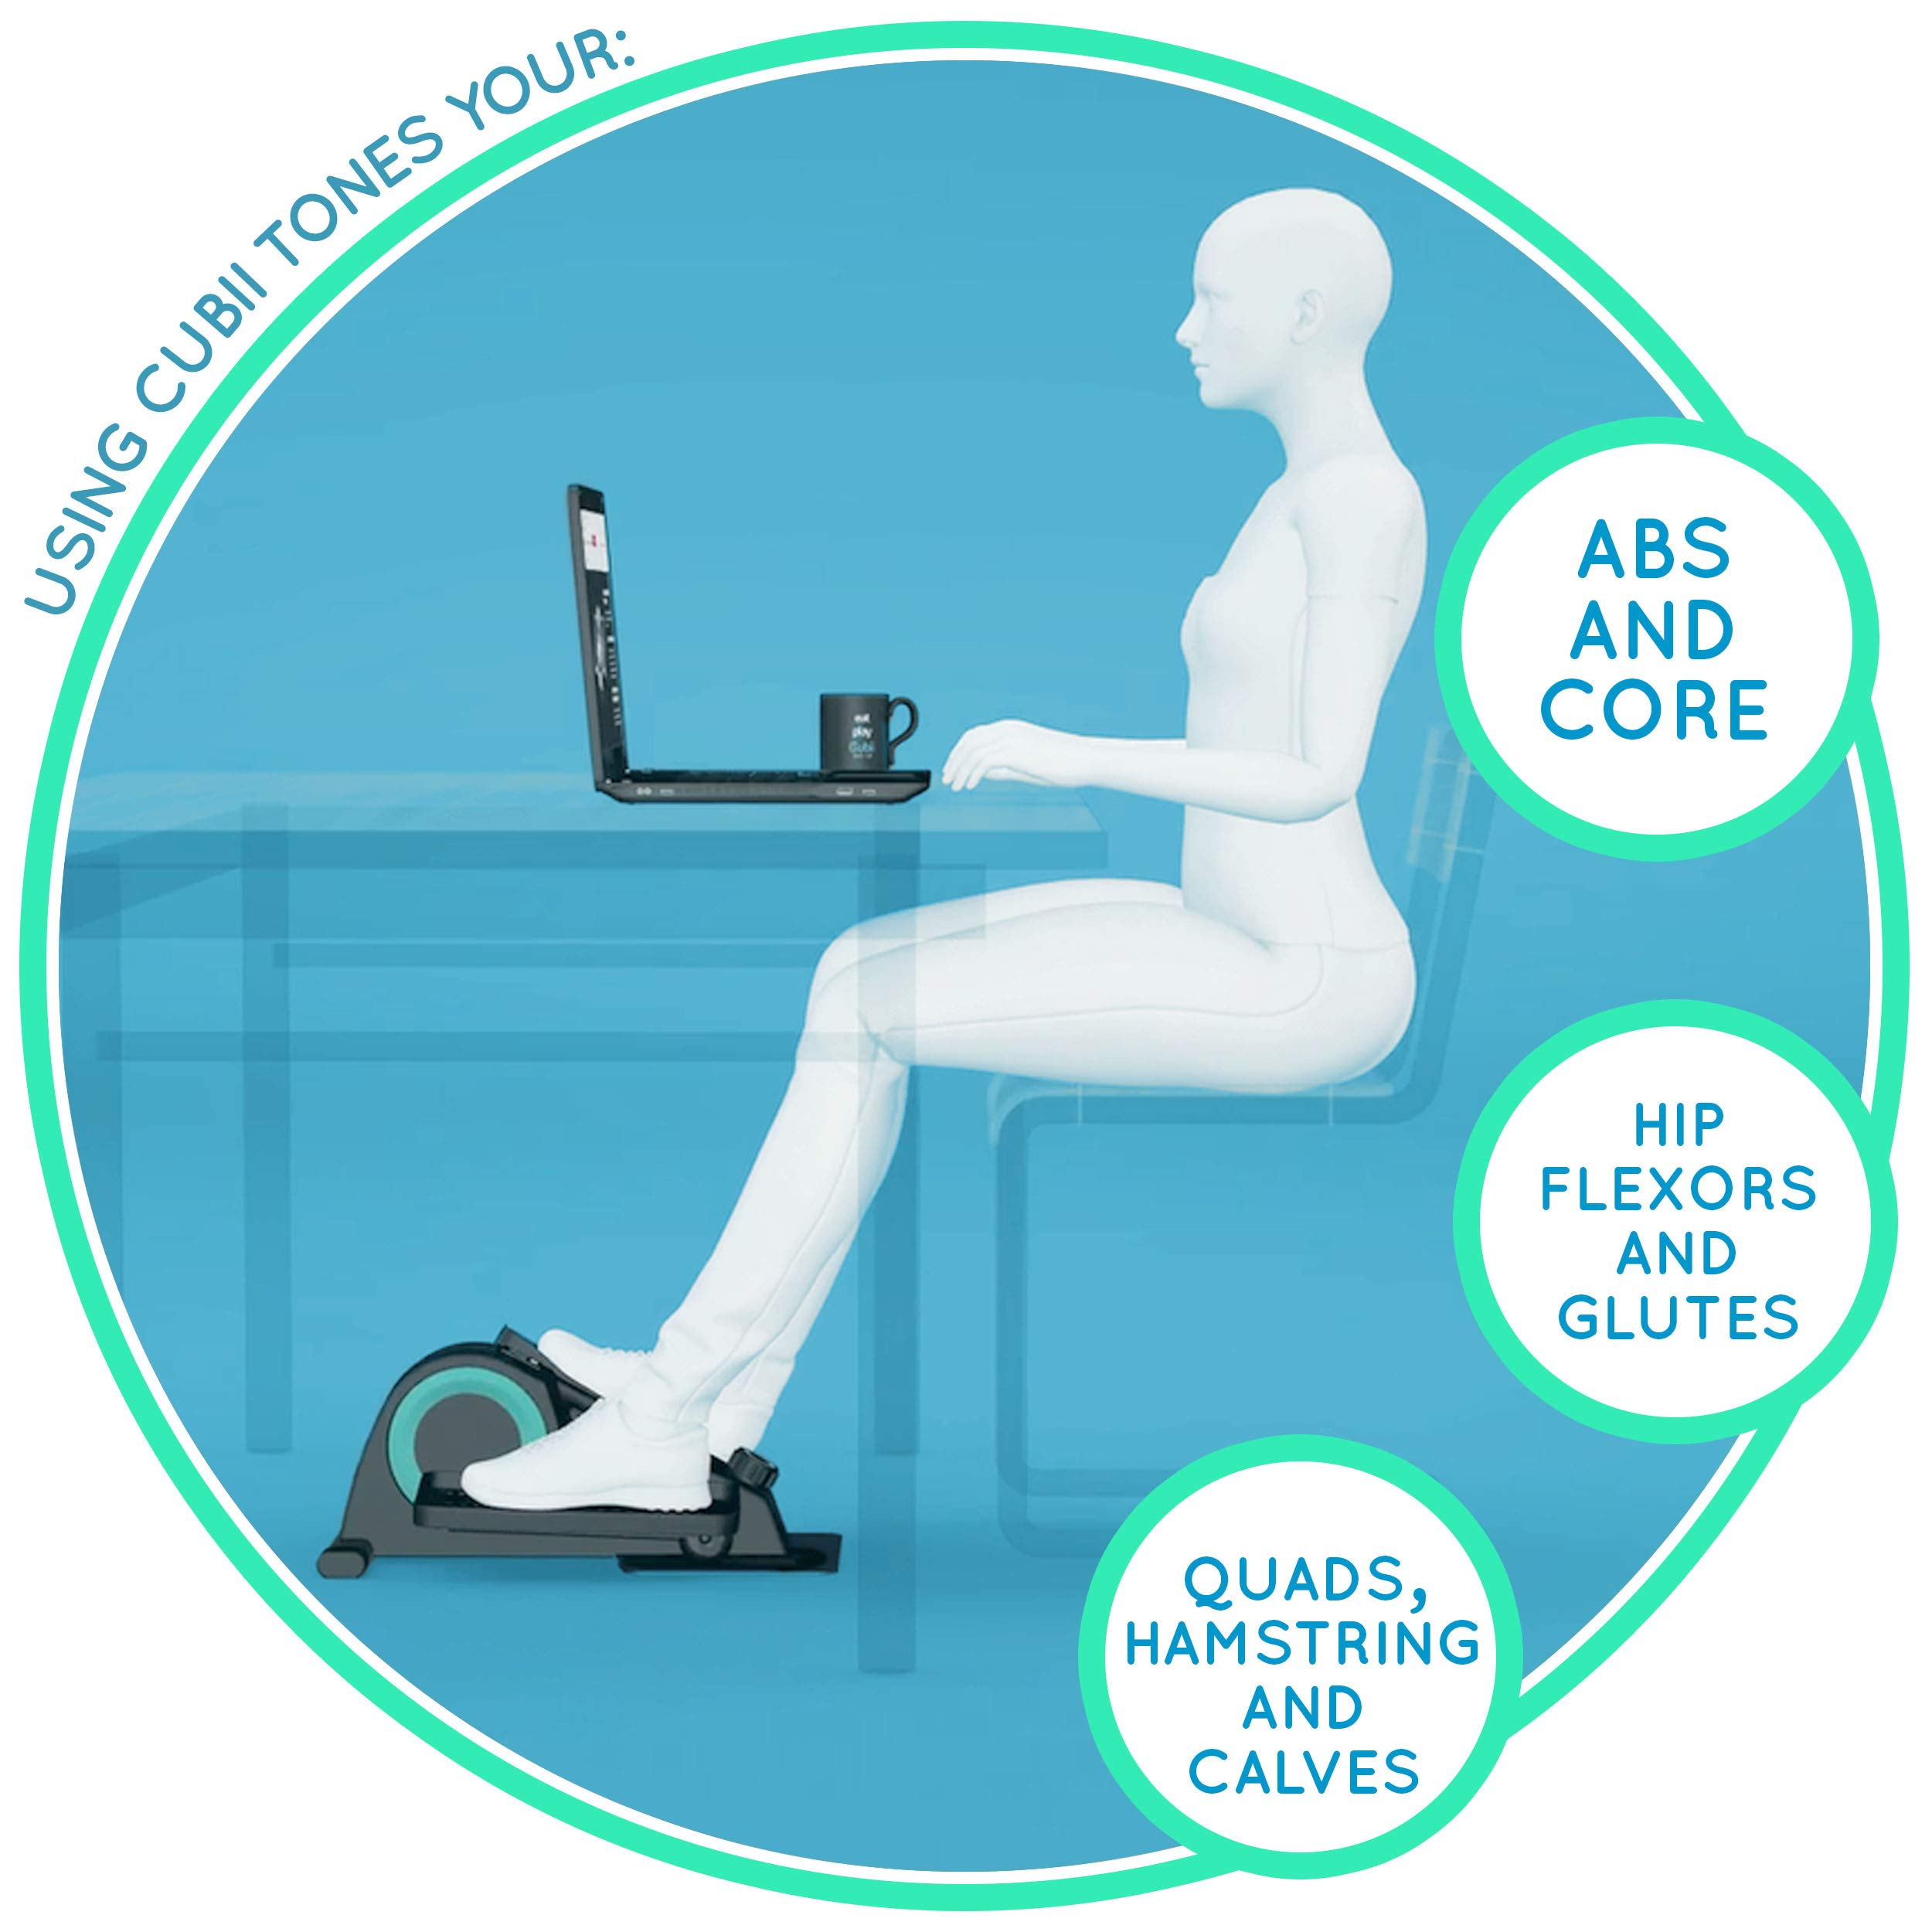 Cubii Under Desk Elliptical, Bluetooth Enabled, Sync w/ FitBit and HealthKit, Adjustable Resistance, Easy Assembly by Cubii (Image #6)